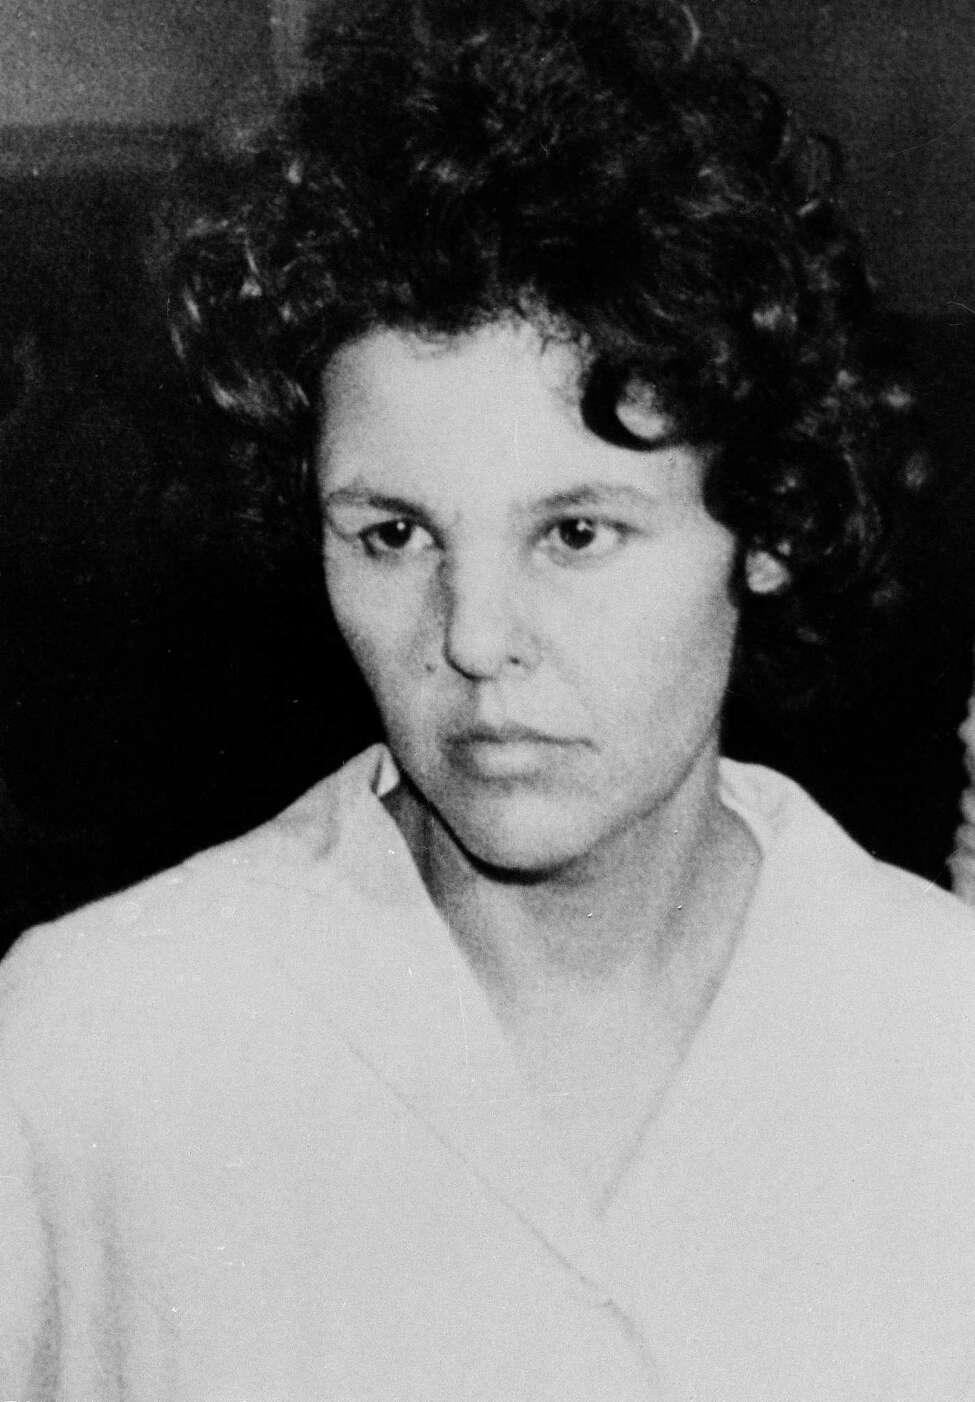 FILE - In this Oct. 21, 1981 file photo, Judith Clark is taken into police custody in Nanuet, N.Y. Clark, a former radical who drove a getaway car during the 1981 Brinks armored car robbery will be eligible for parole in 2017 following a commutation from New York Gov. Andrew Cuomo on Friday, Dec. 30, 2016. (AP Photo/David Handschuh, File) ORG XMIT: NYR108